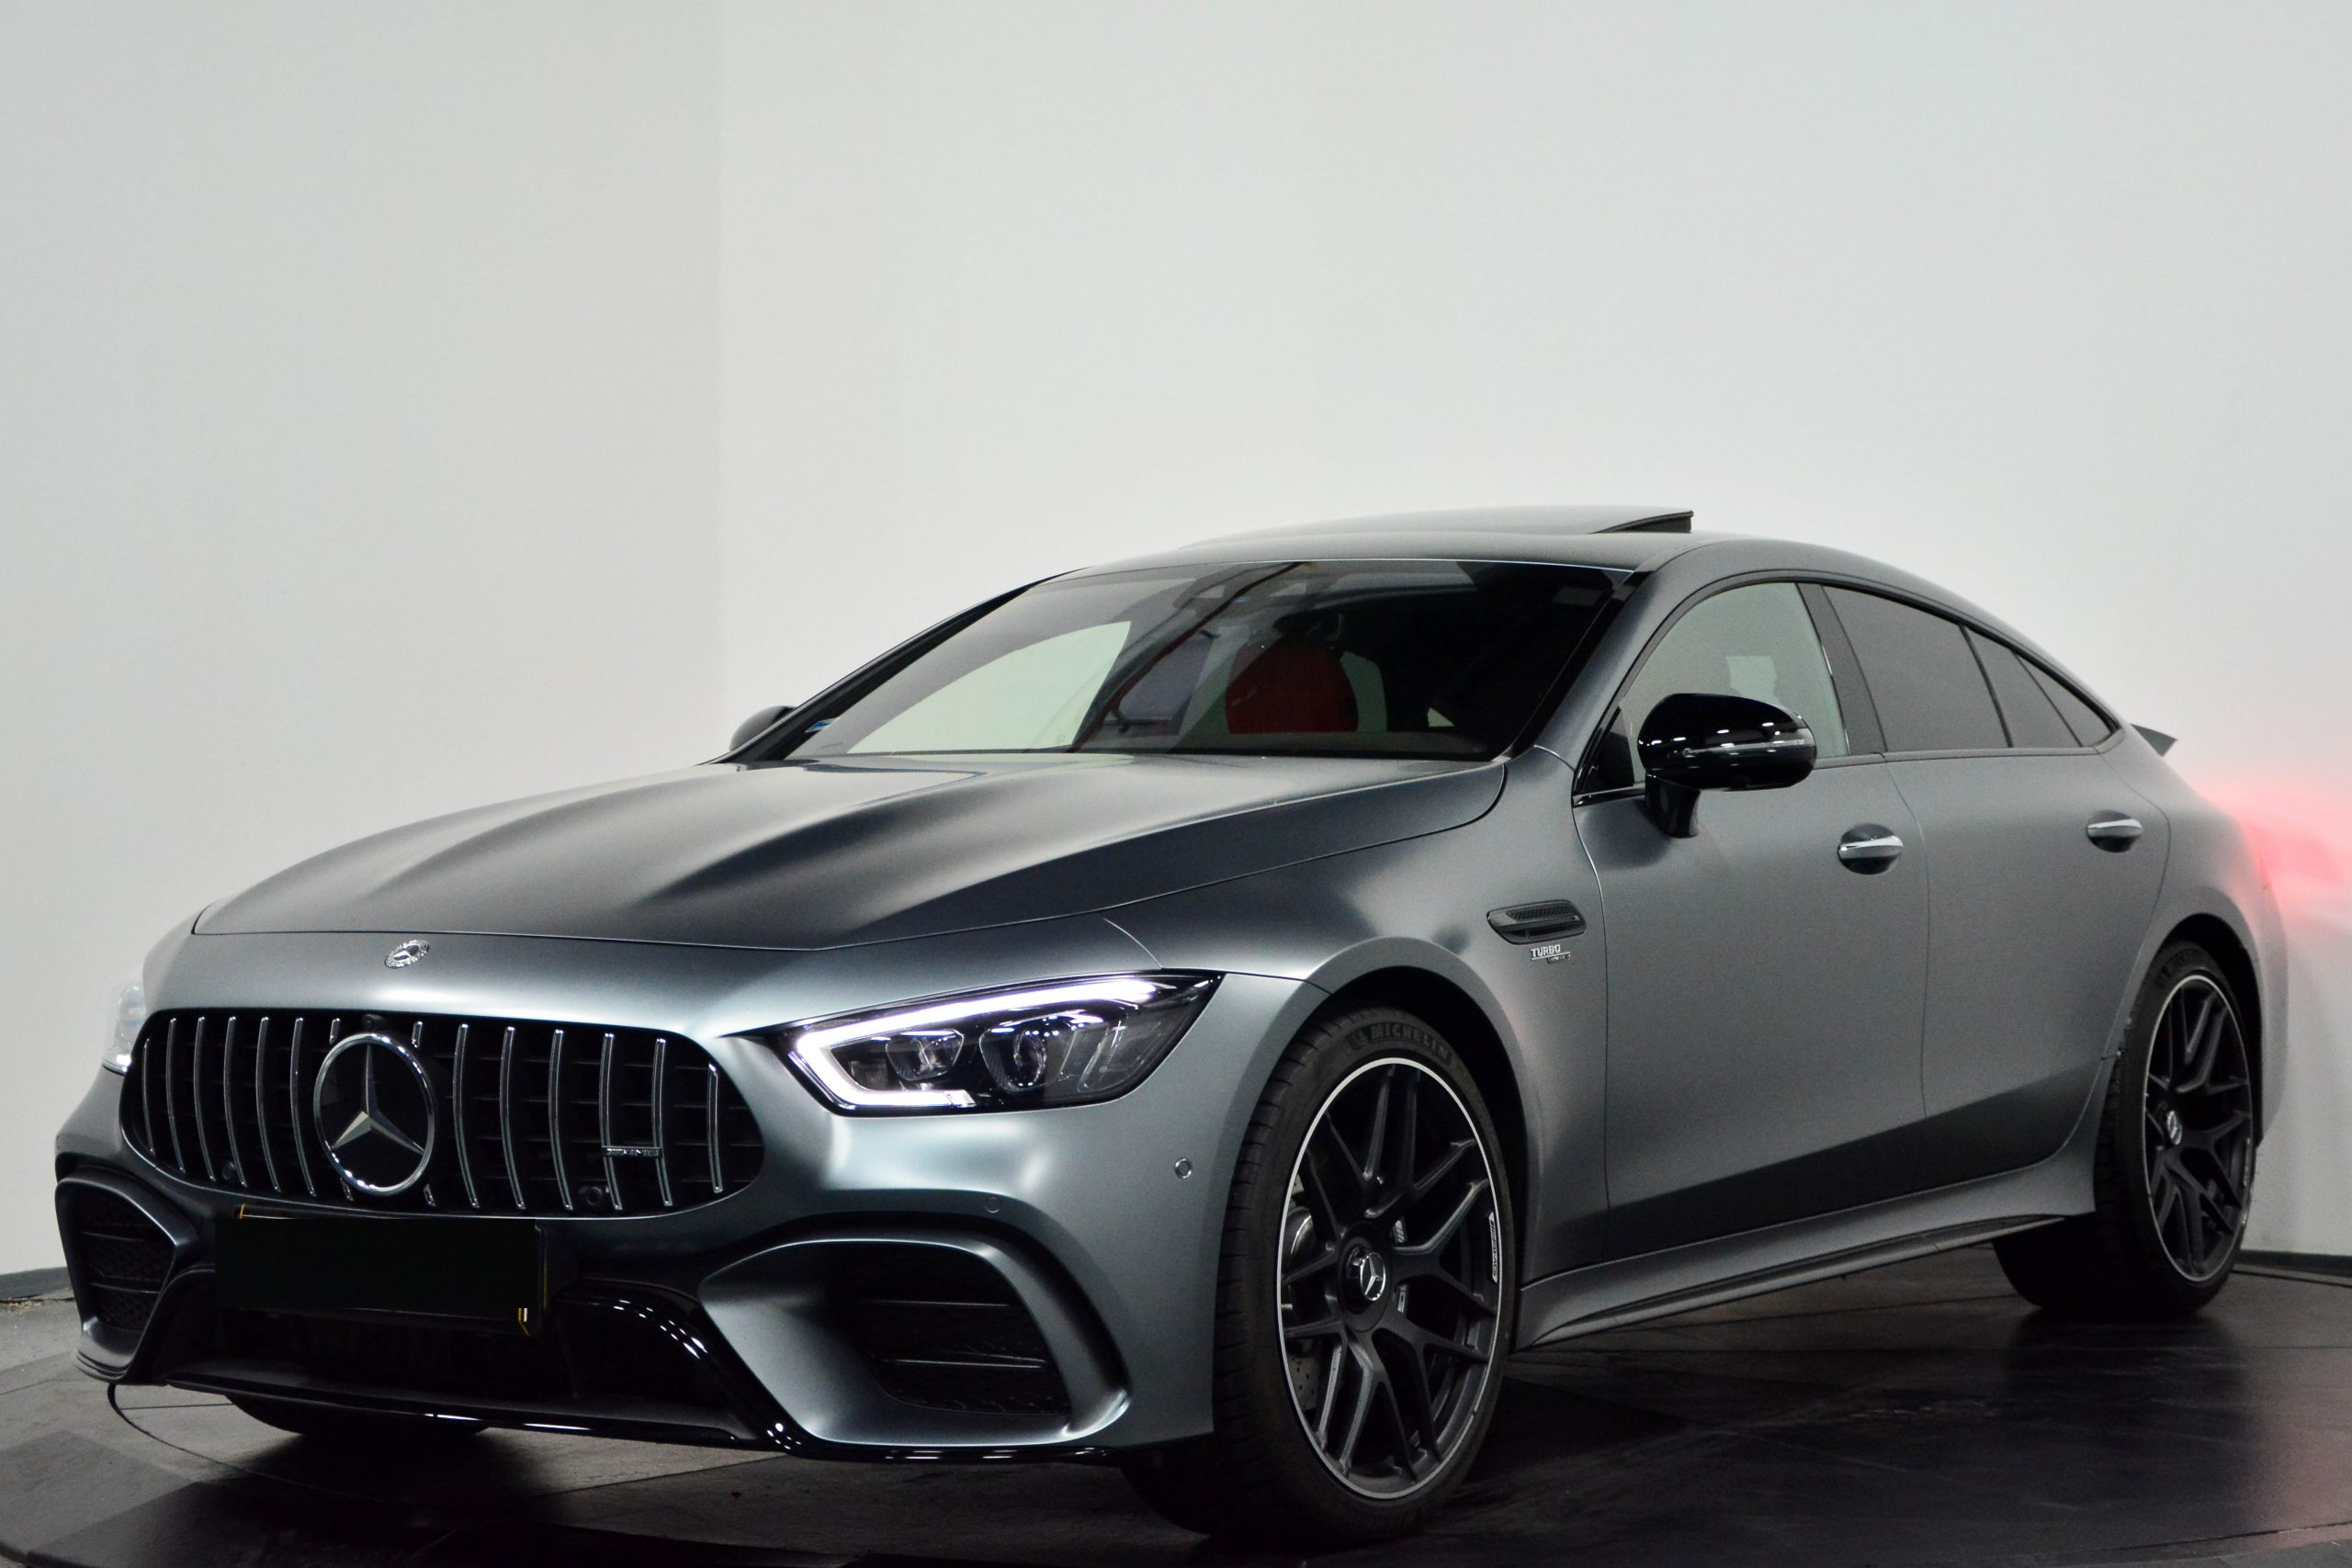 02 scaled - MERCEDES AMG GT43